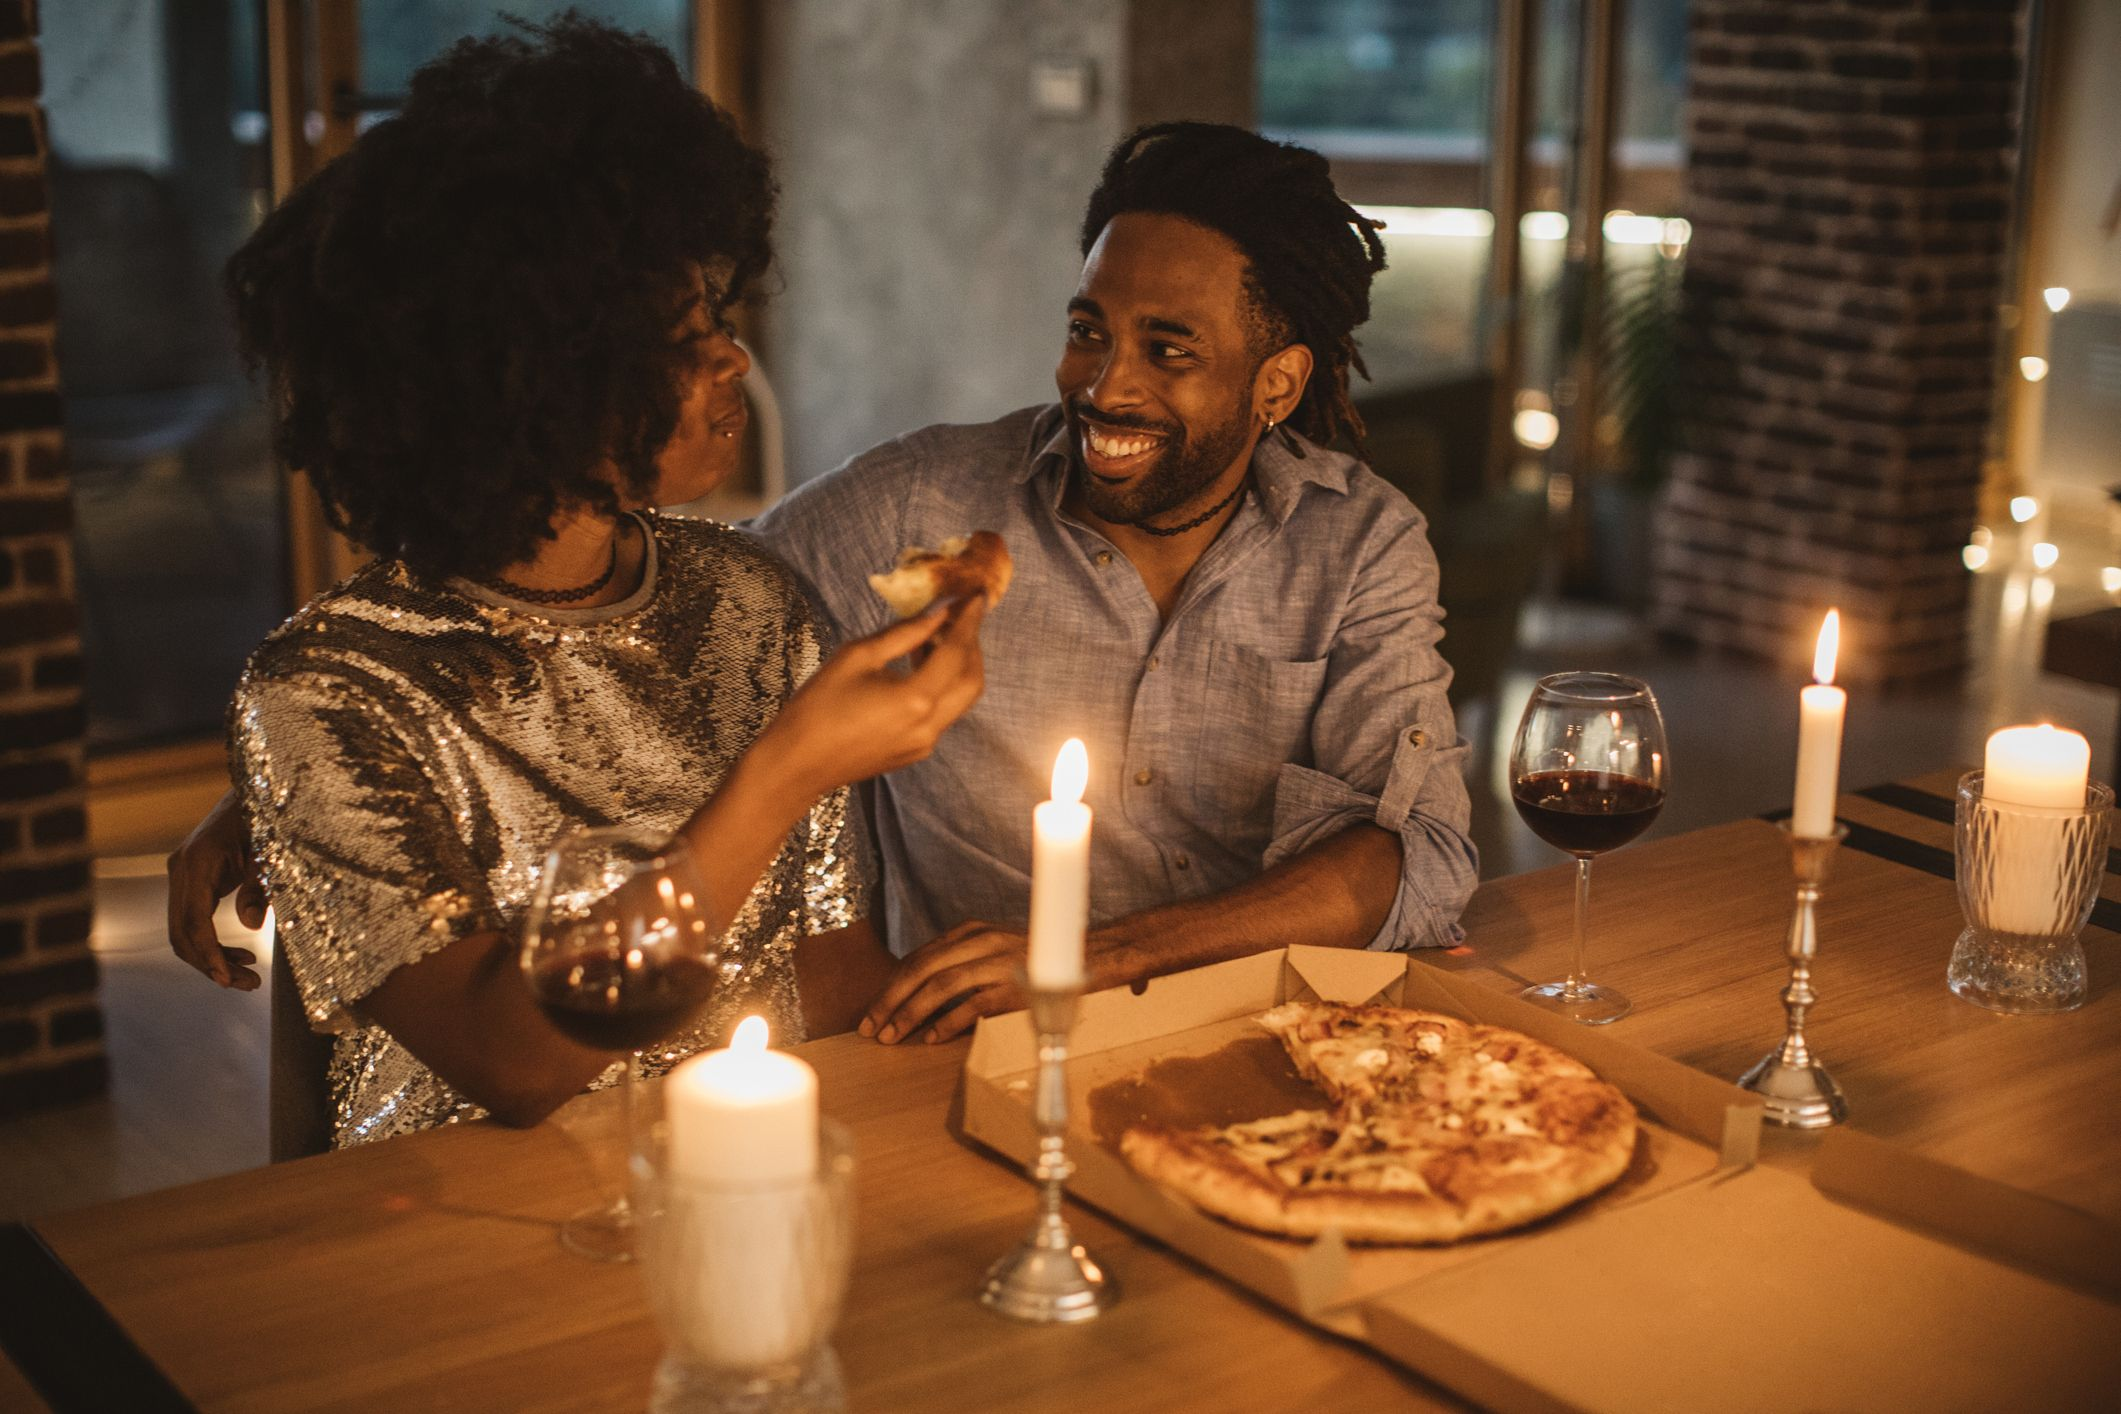 15 Fun Date Night Ideas For Couples That Feel Special Any Time